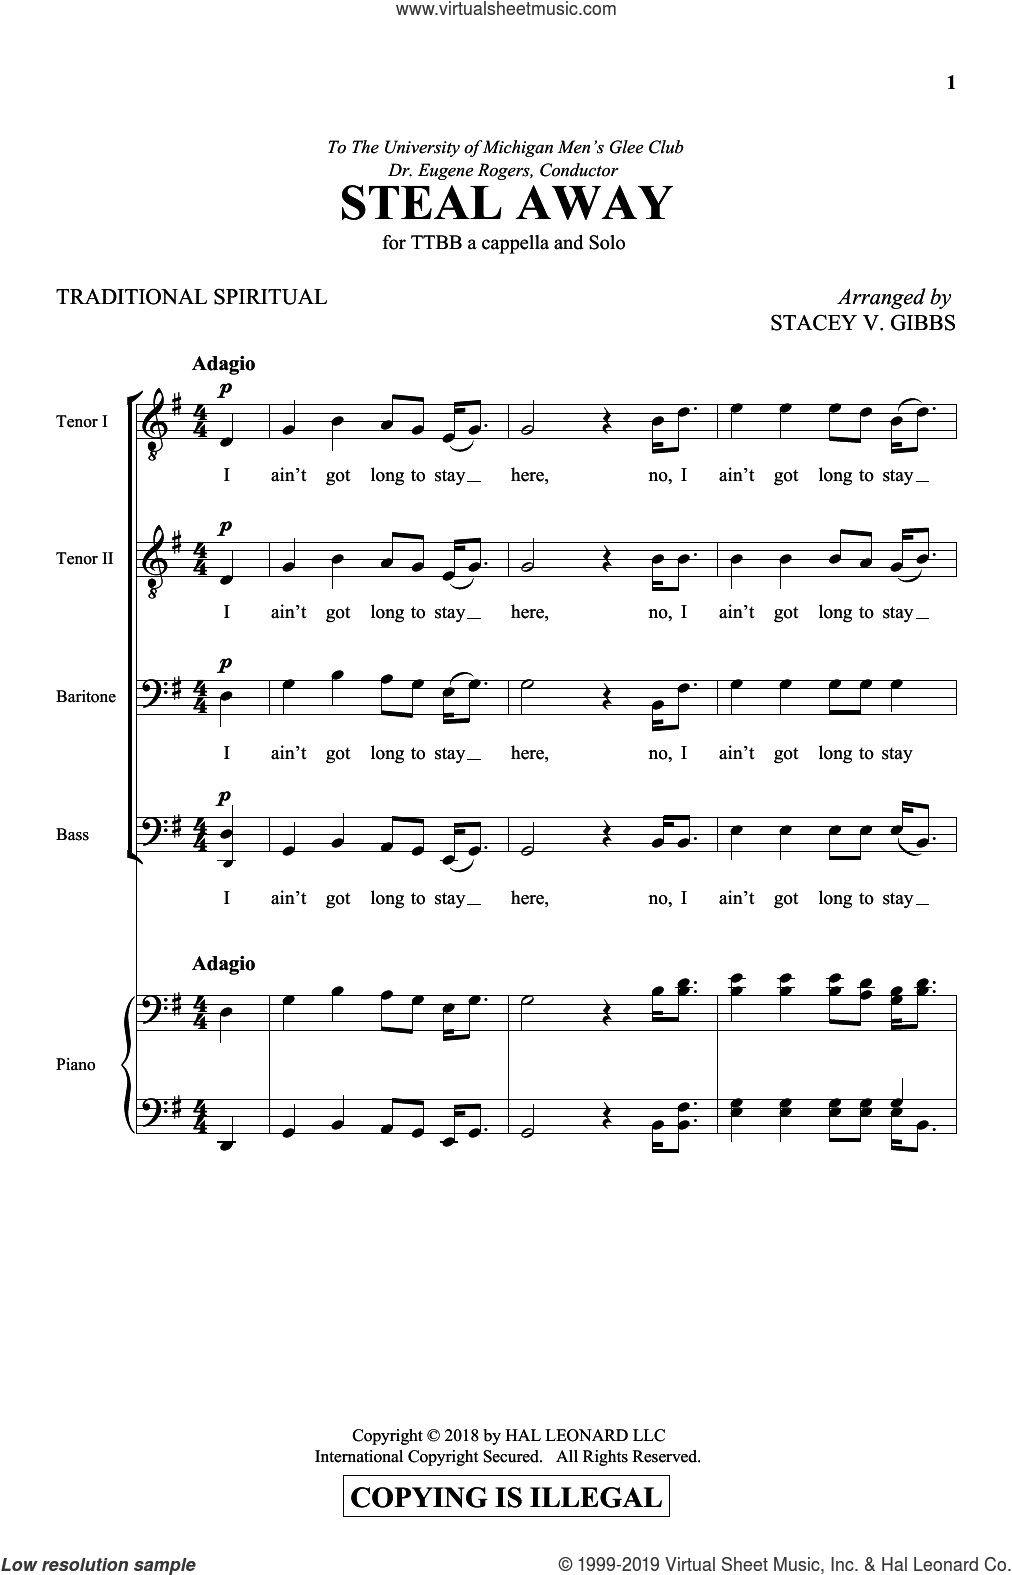 Steal Away sheet music for choir (TTBB: tenor, bass) by Stacey Gibbs and Miscellaneous, intermediate skill level